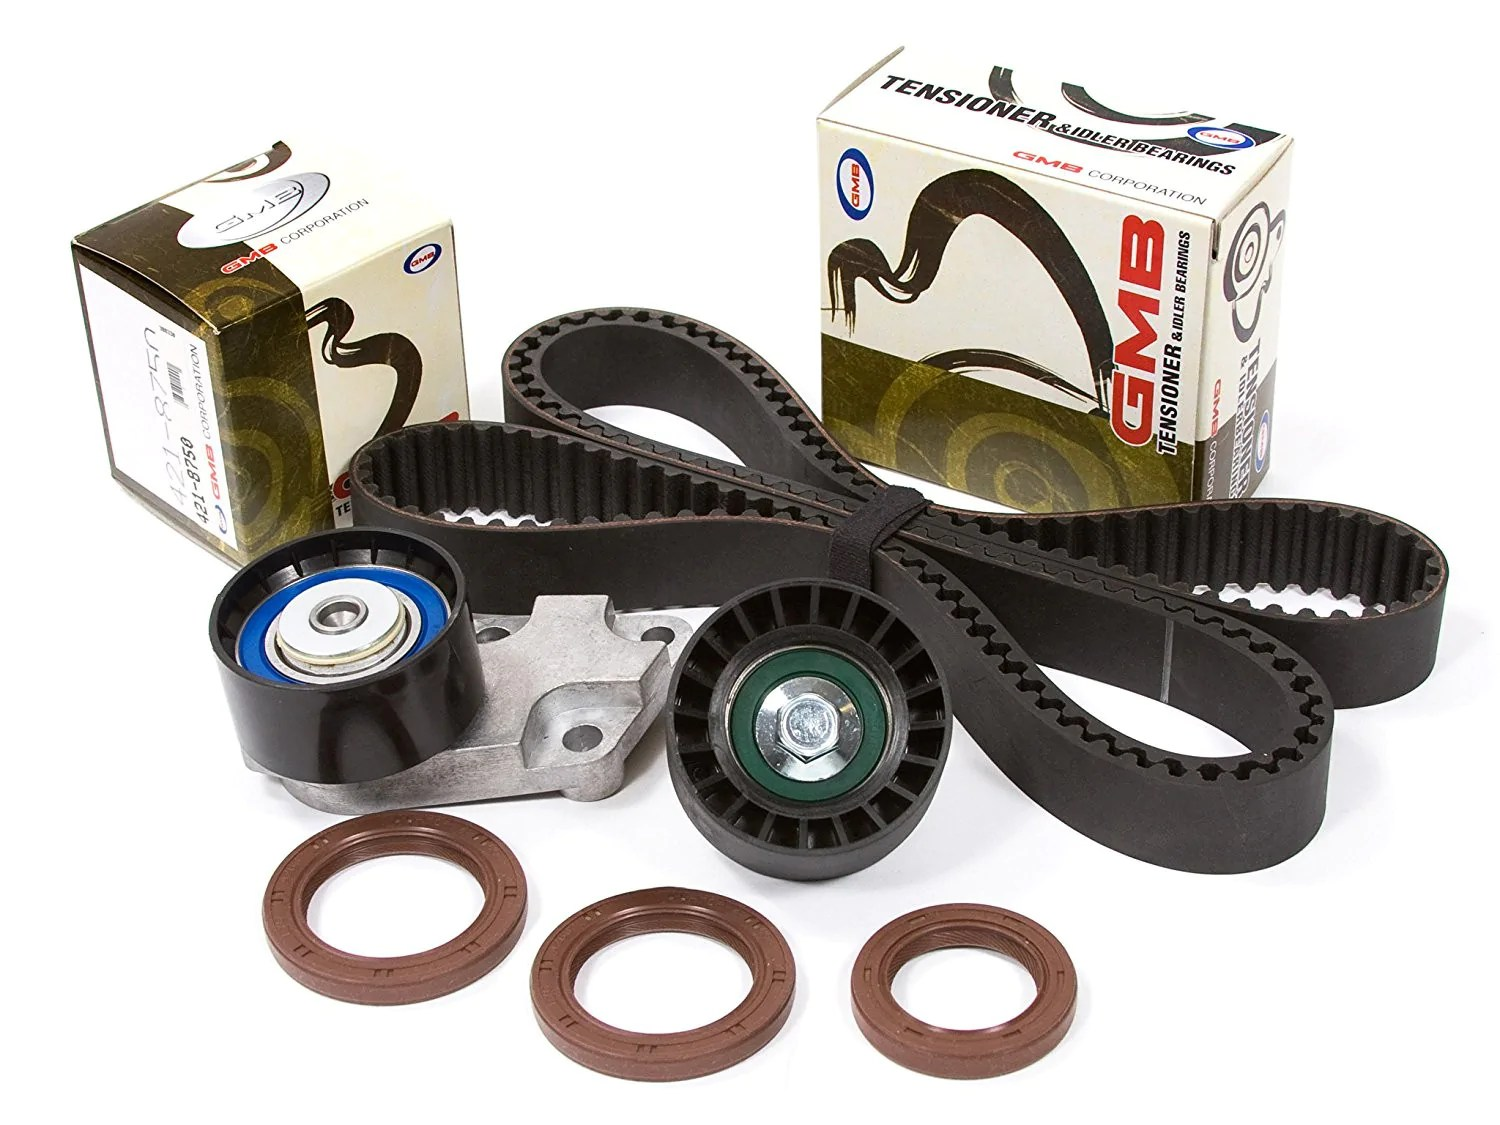 small resolution of timing belt kit for 1999 2002 daewoo lanos 1 6l 1598cc 98cid dohc 16 proparts usa